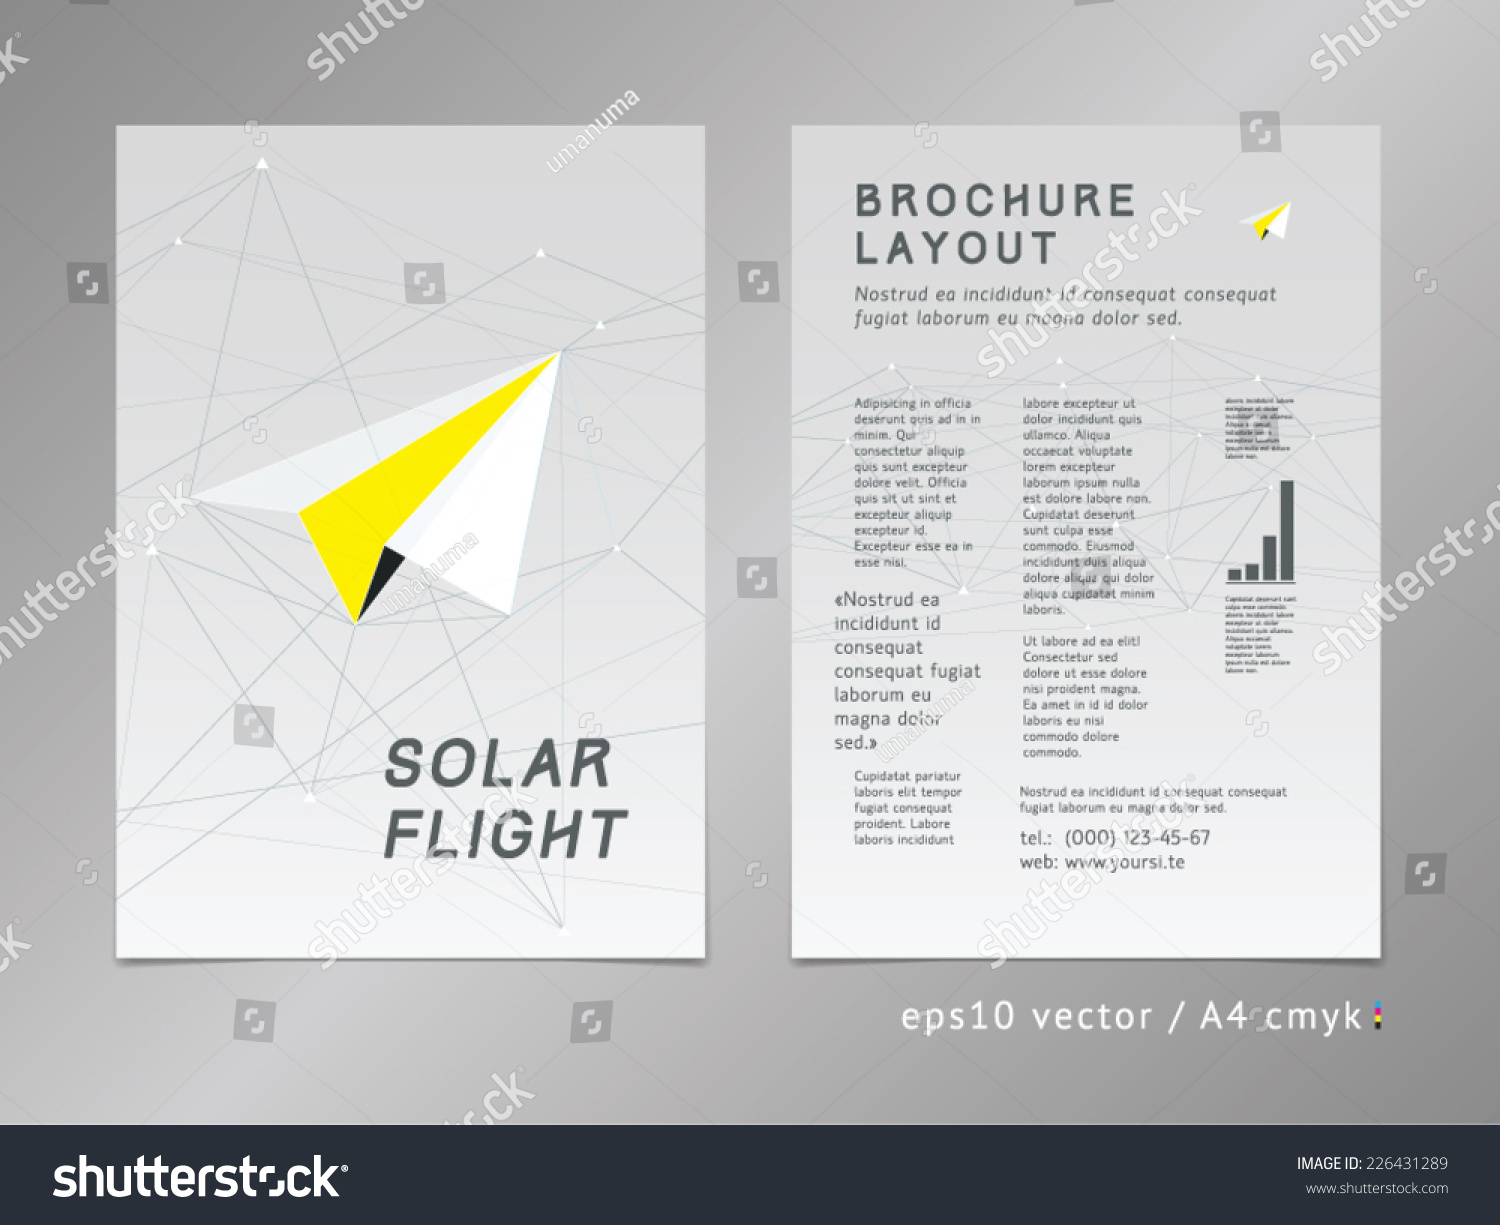 leaflet brochure cover page layout template stock vector  leaflet brochure cover page layout template polygonal design geometric sharp surfaces